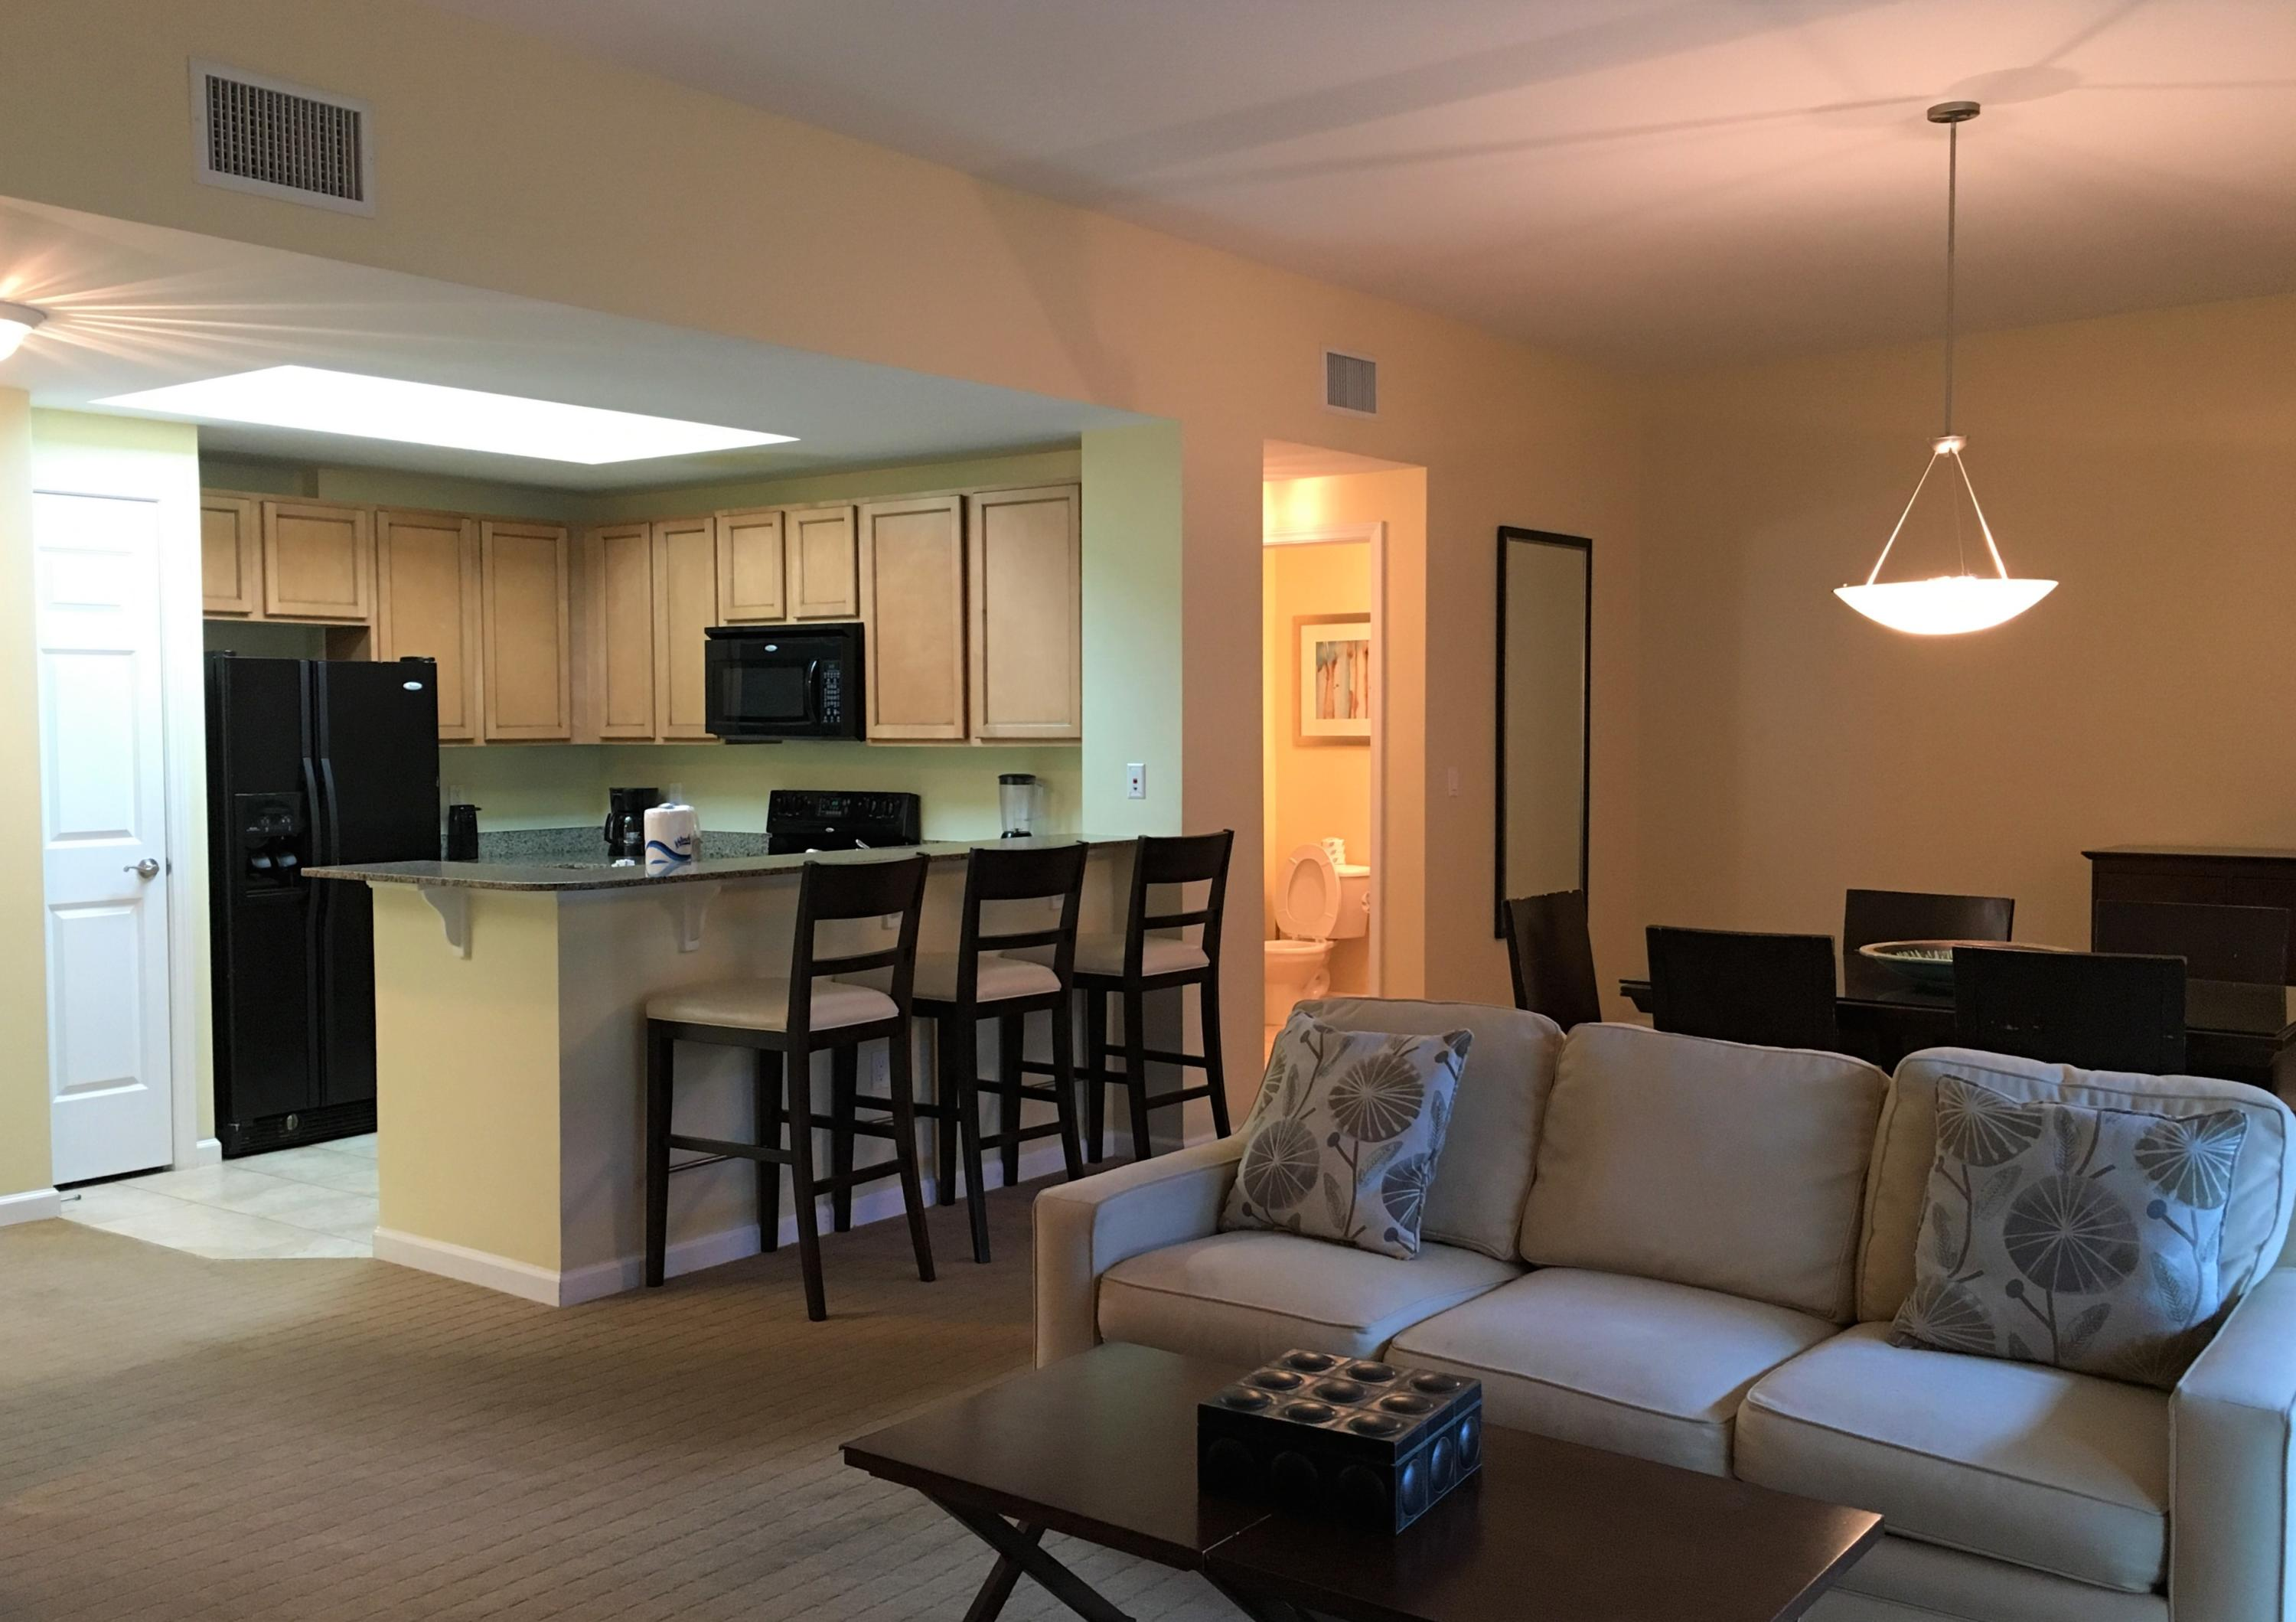 REDUCED! Great Price on a Poolside Villa at the Palms. Large open unit with huge bedrooms. Split floorplan with Bedroom and Bath on either side with Kitchen and living area in the middle, walk right out to the best pool in Destin!